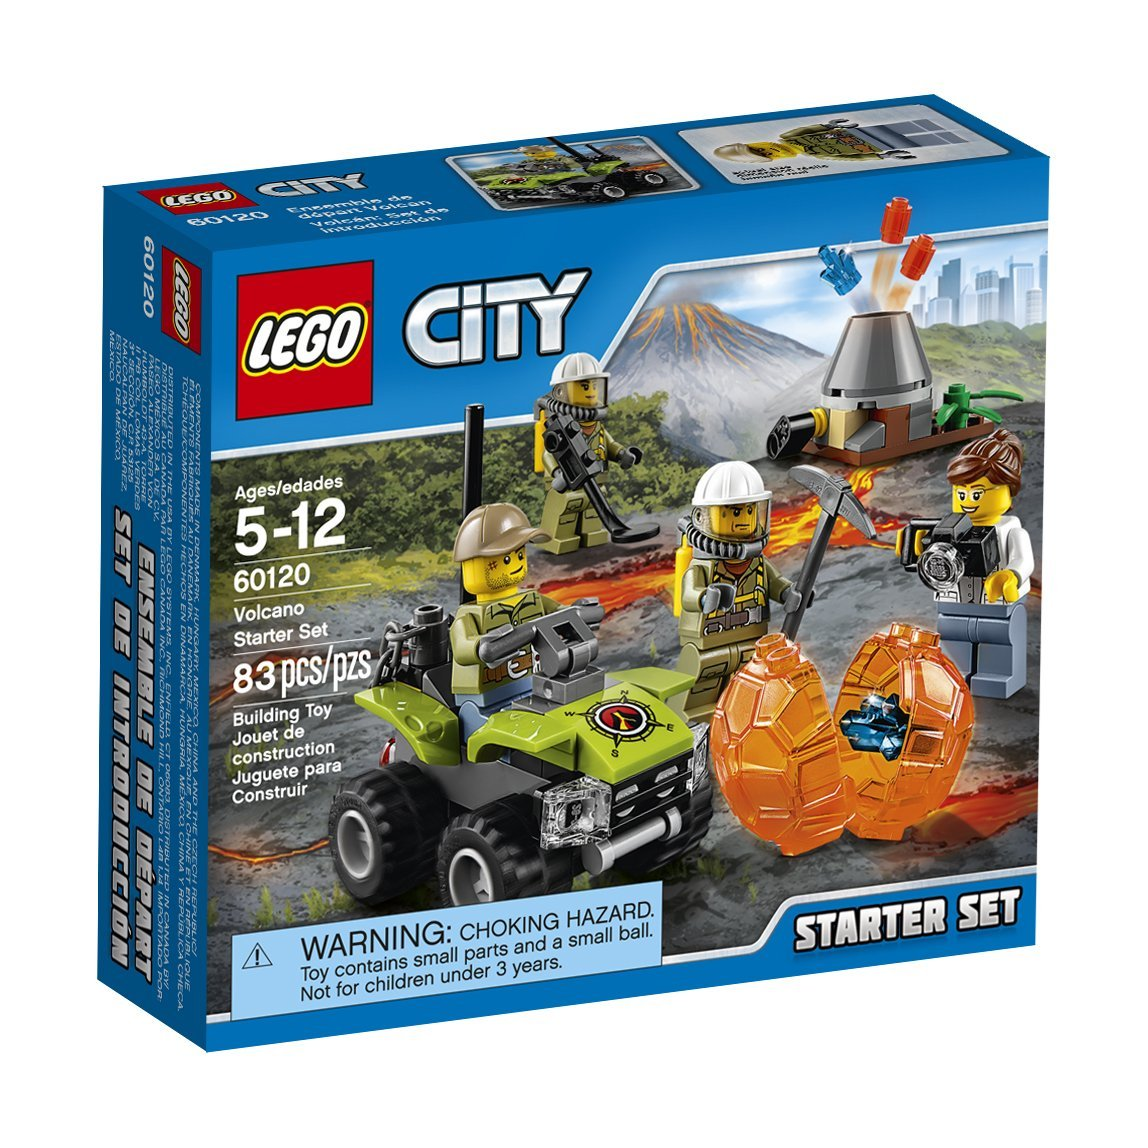 LEGO City Volcano Explorers 60120 Volcano Starter Set Building Kit (83 Piece)